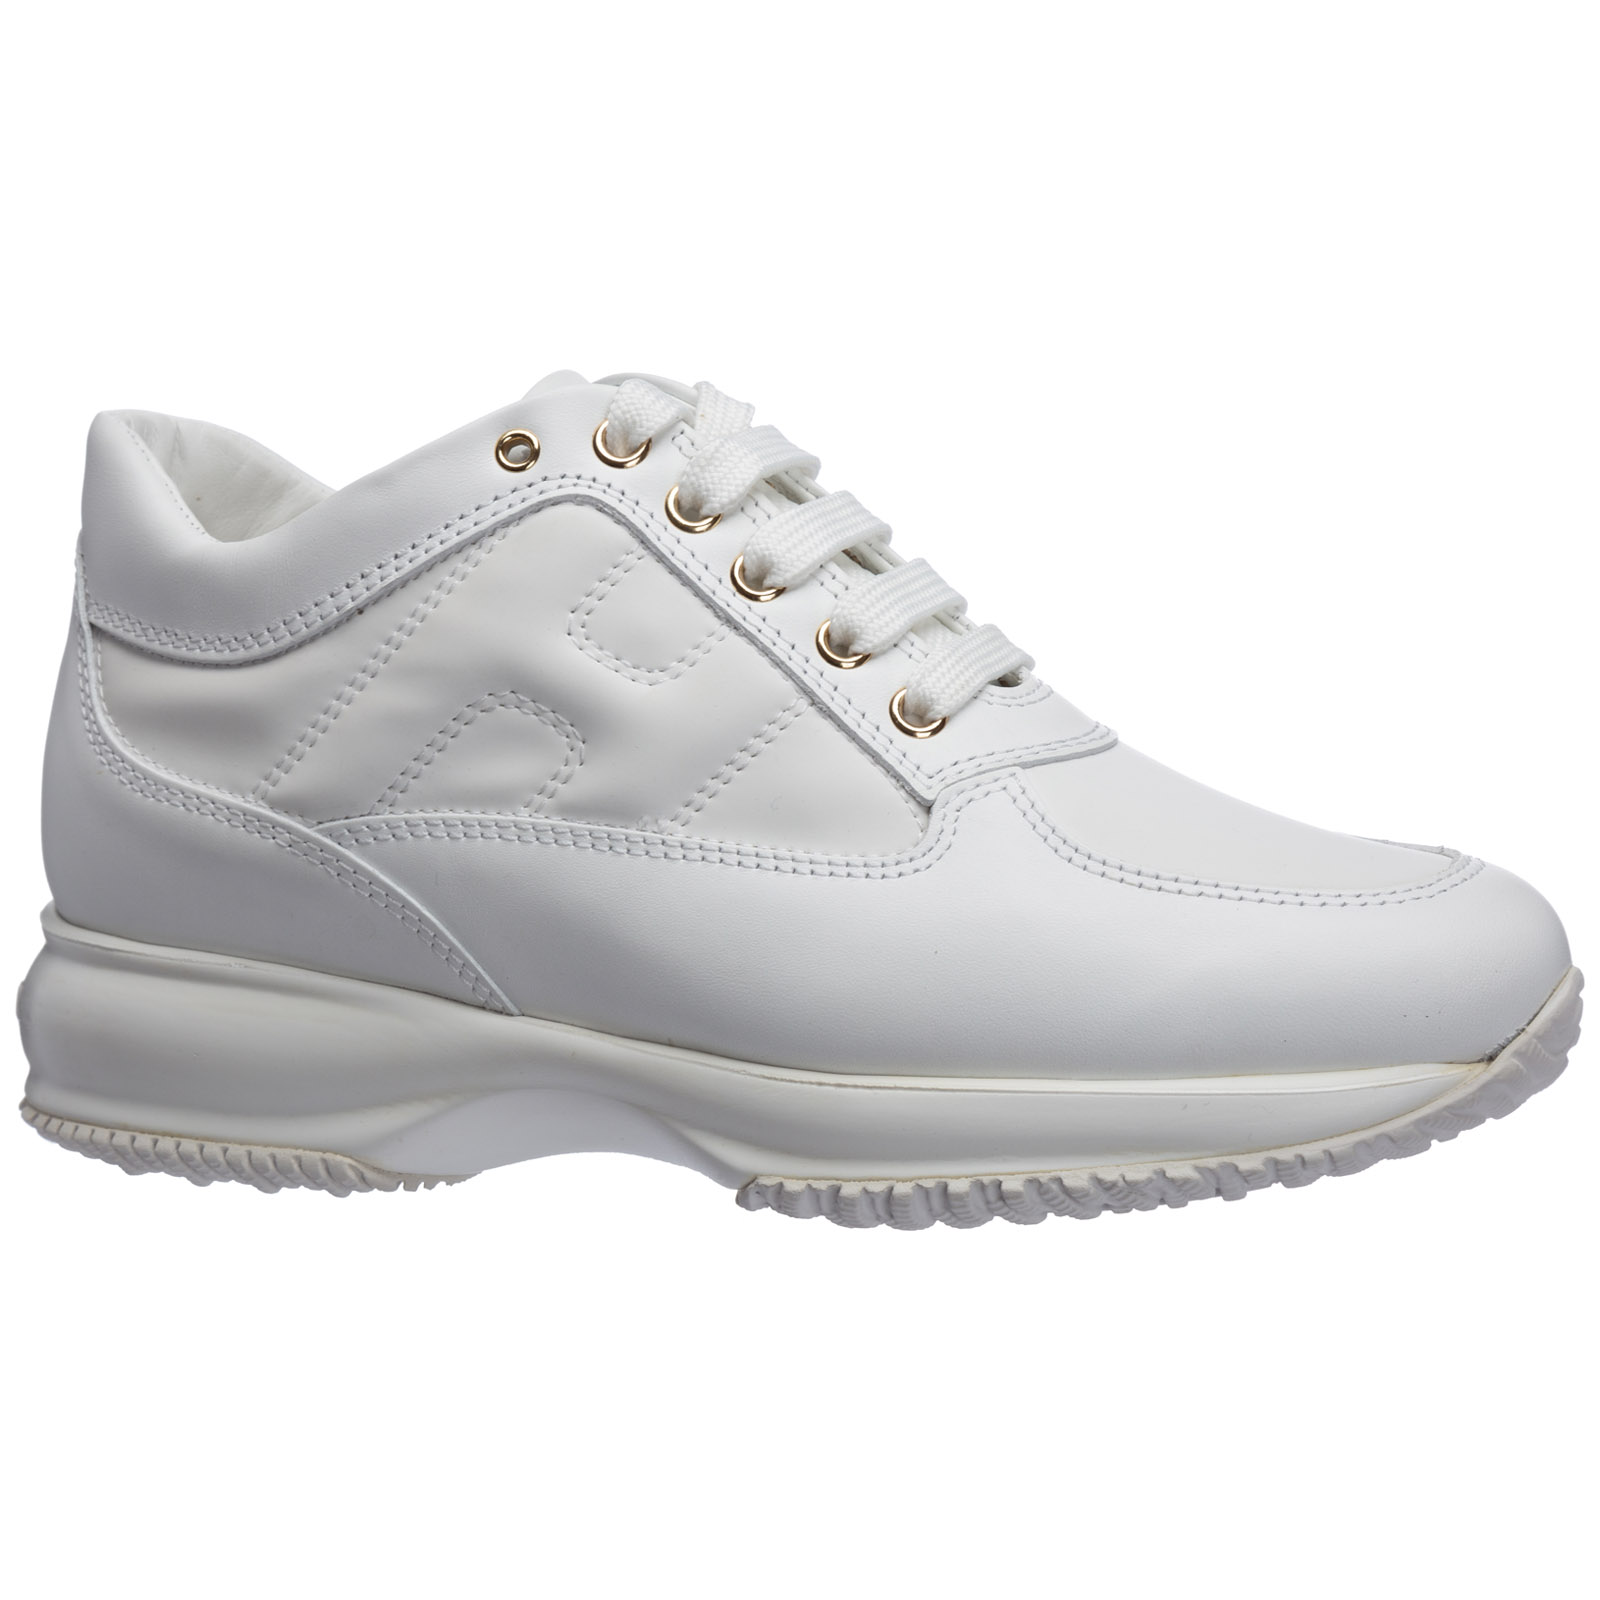 Women's shoes leather trainers sneakers interactive